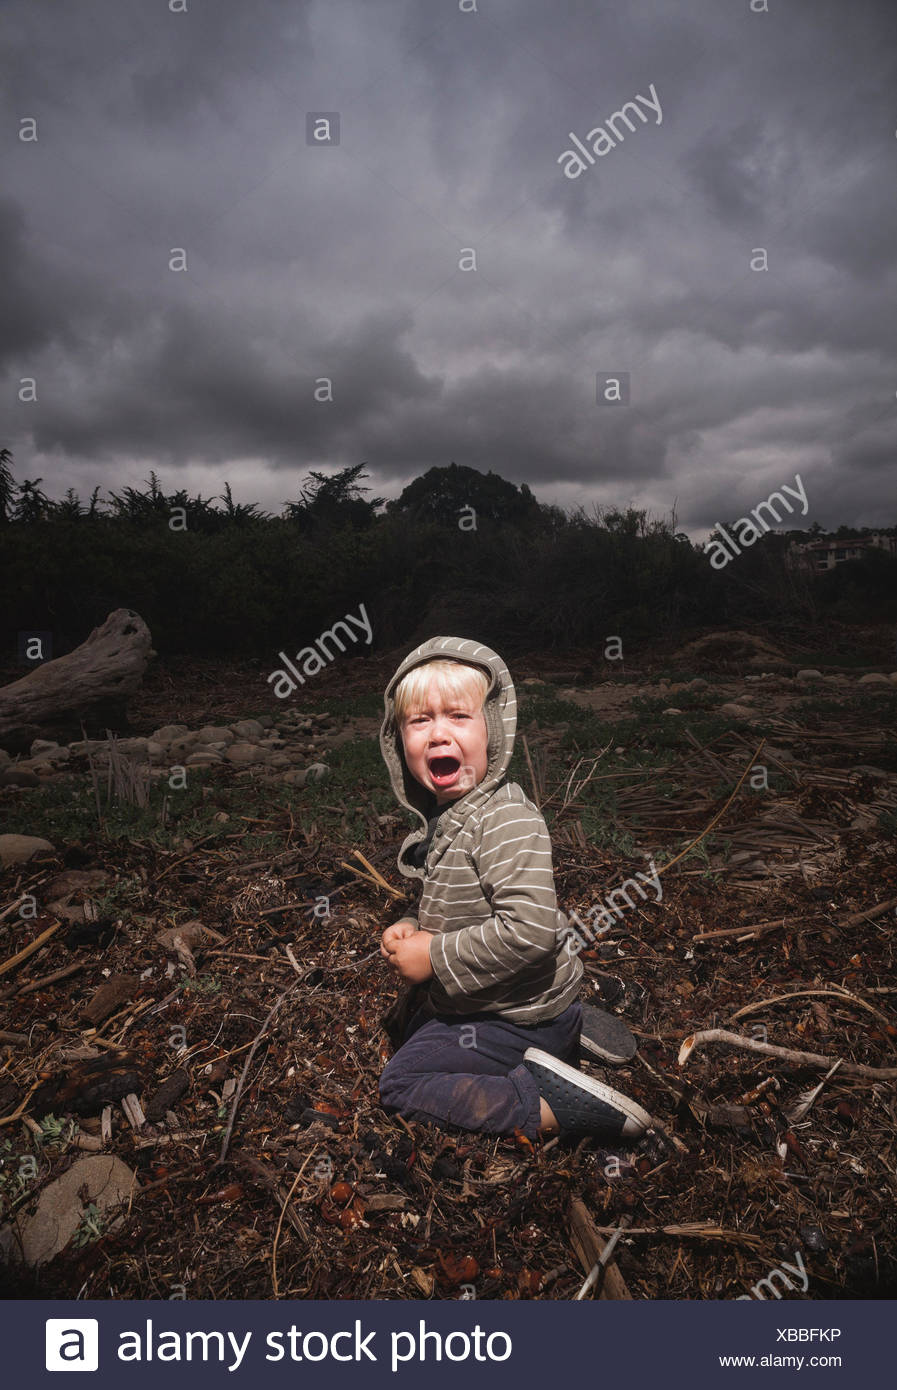 Young boy kneeling on ground crying against stormy sky Stock Photo